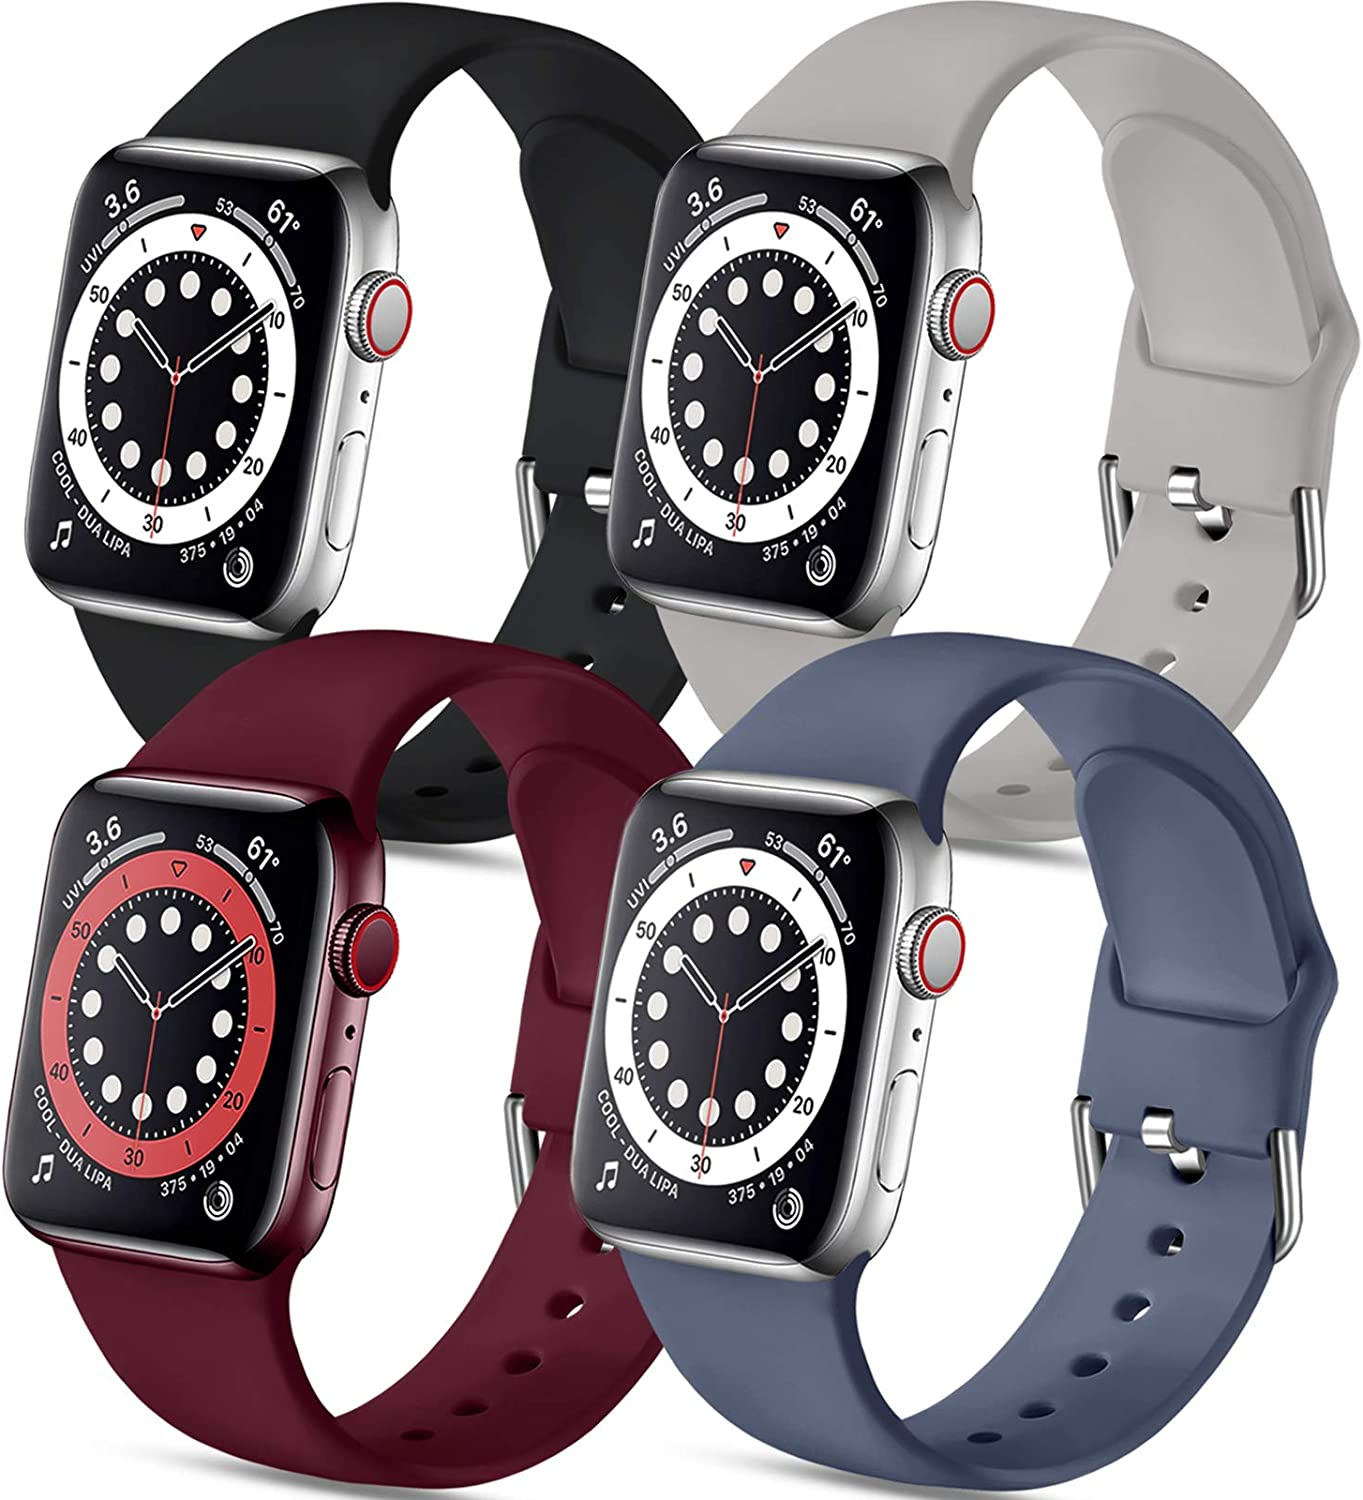 Muranne Compatible with Apple Watch Band 40mm 38mm 44mm 42mm for Women Men, 4 Pack Soft Silicone Replacement Wrist Strap Compatible with iWatch SE Series 6 Series 5 4 3 2 1 All Models